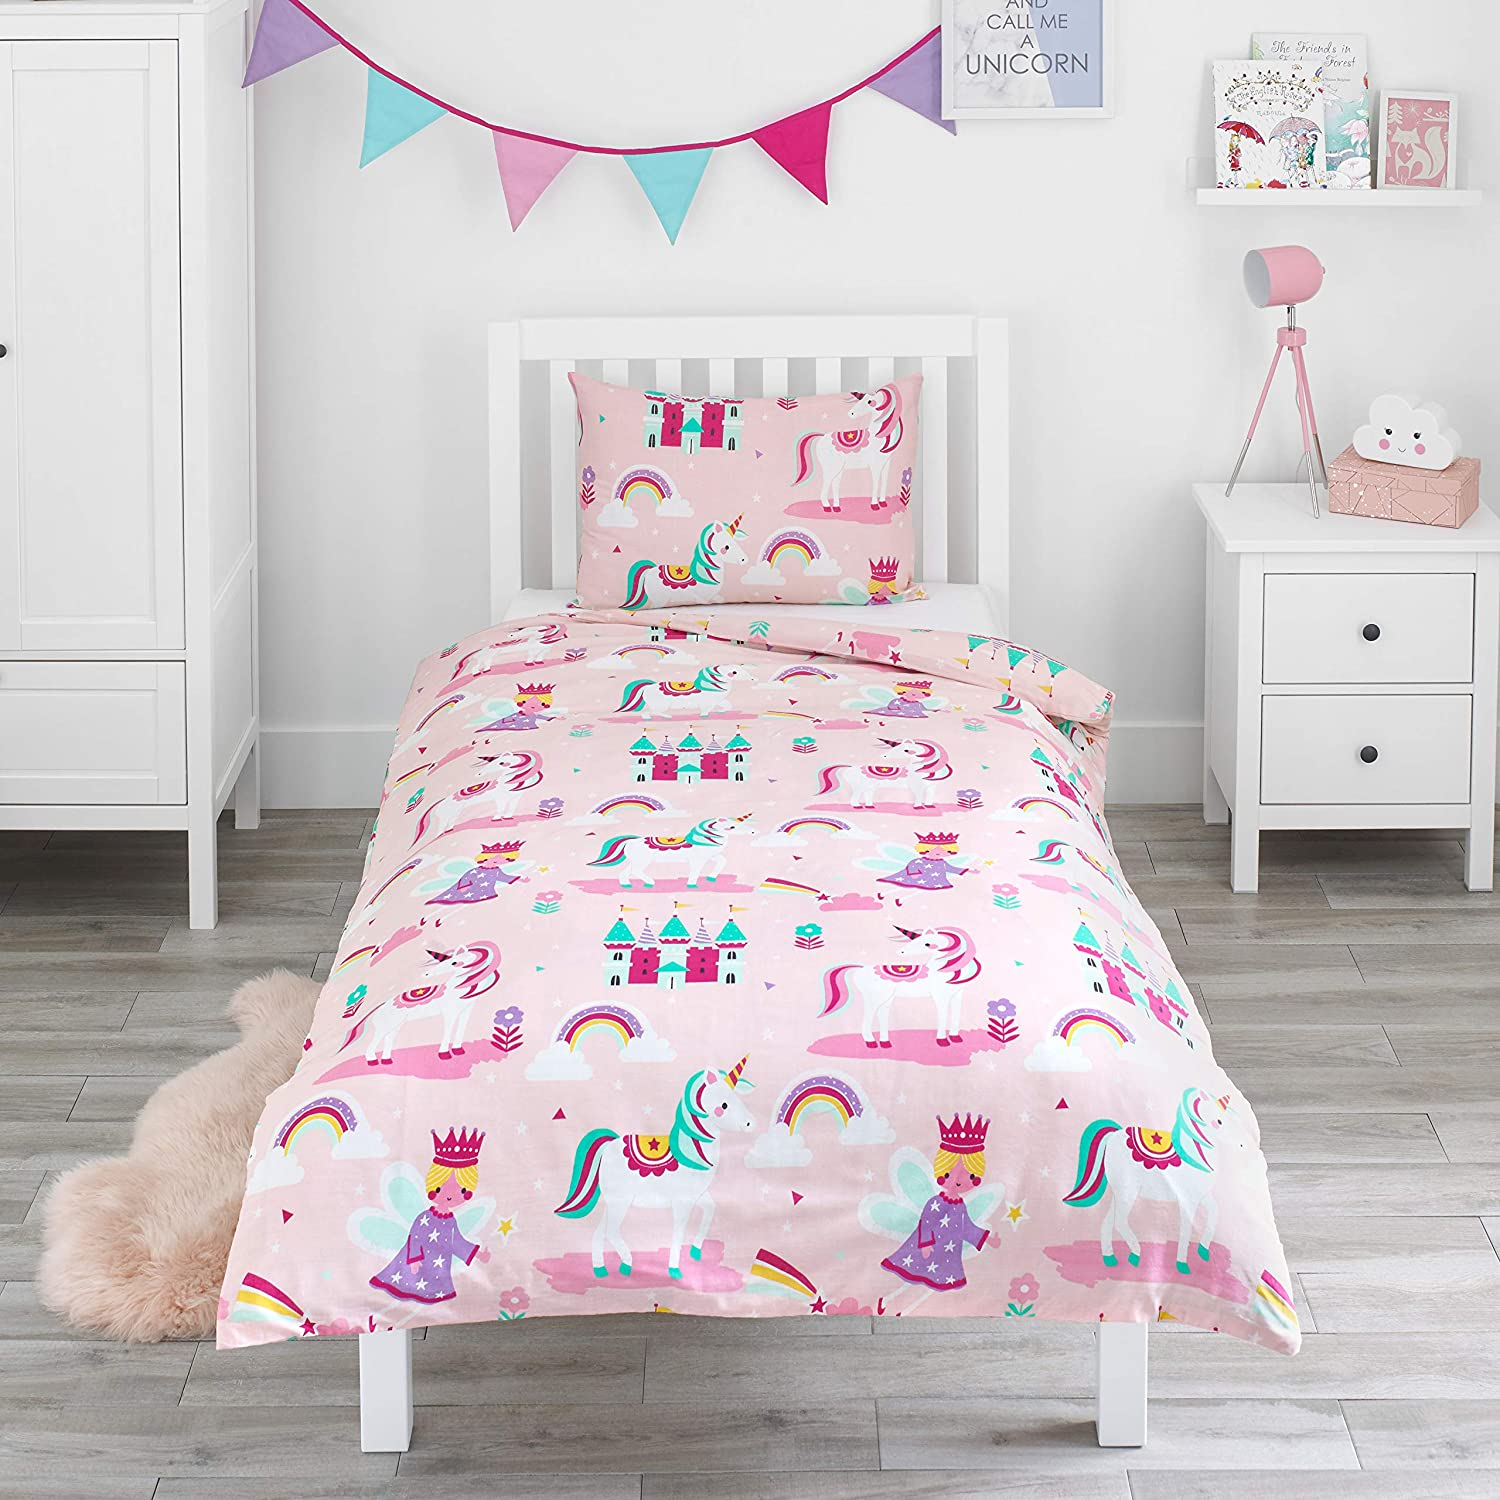 2 Piece Kids Cotton Duvet Cover /& Pillowcase for Crib Cot Bed and Junior Bed